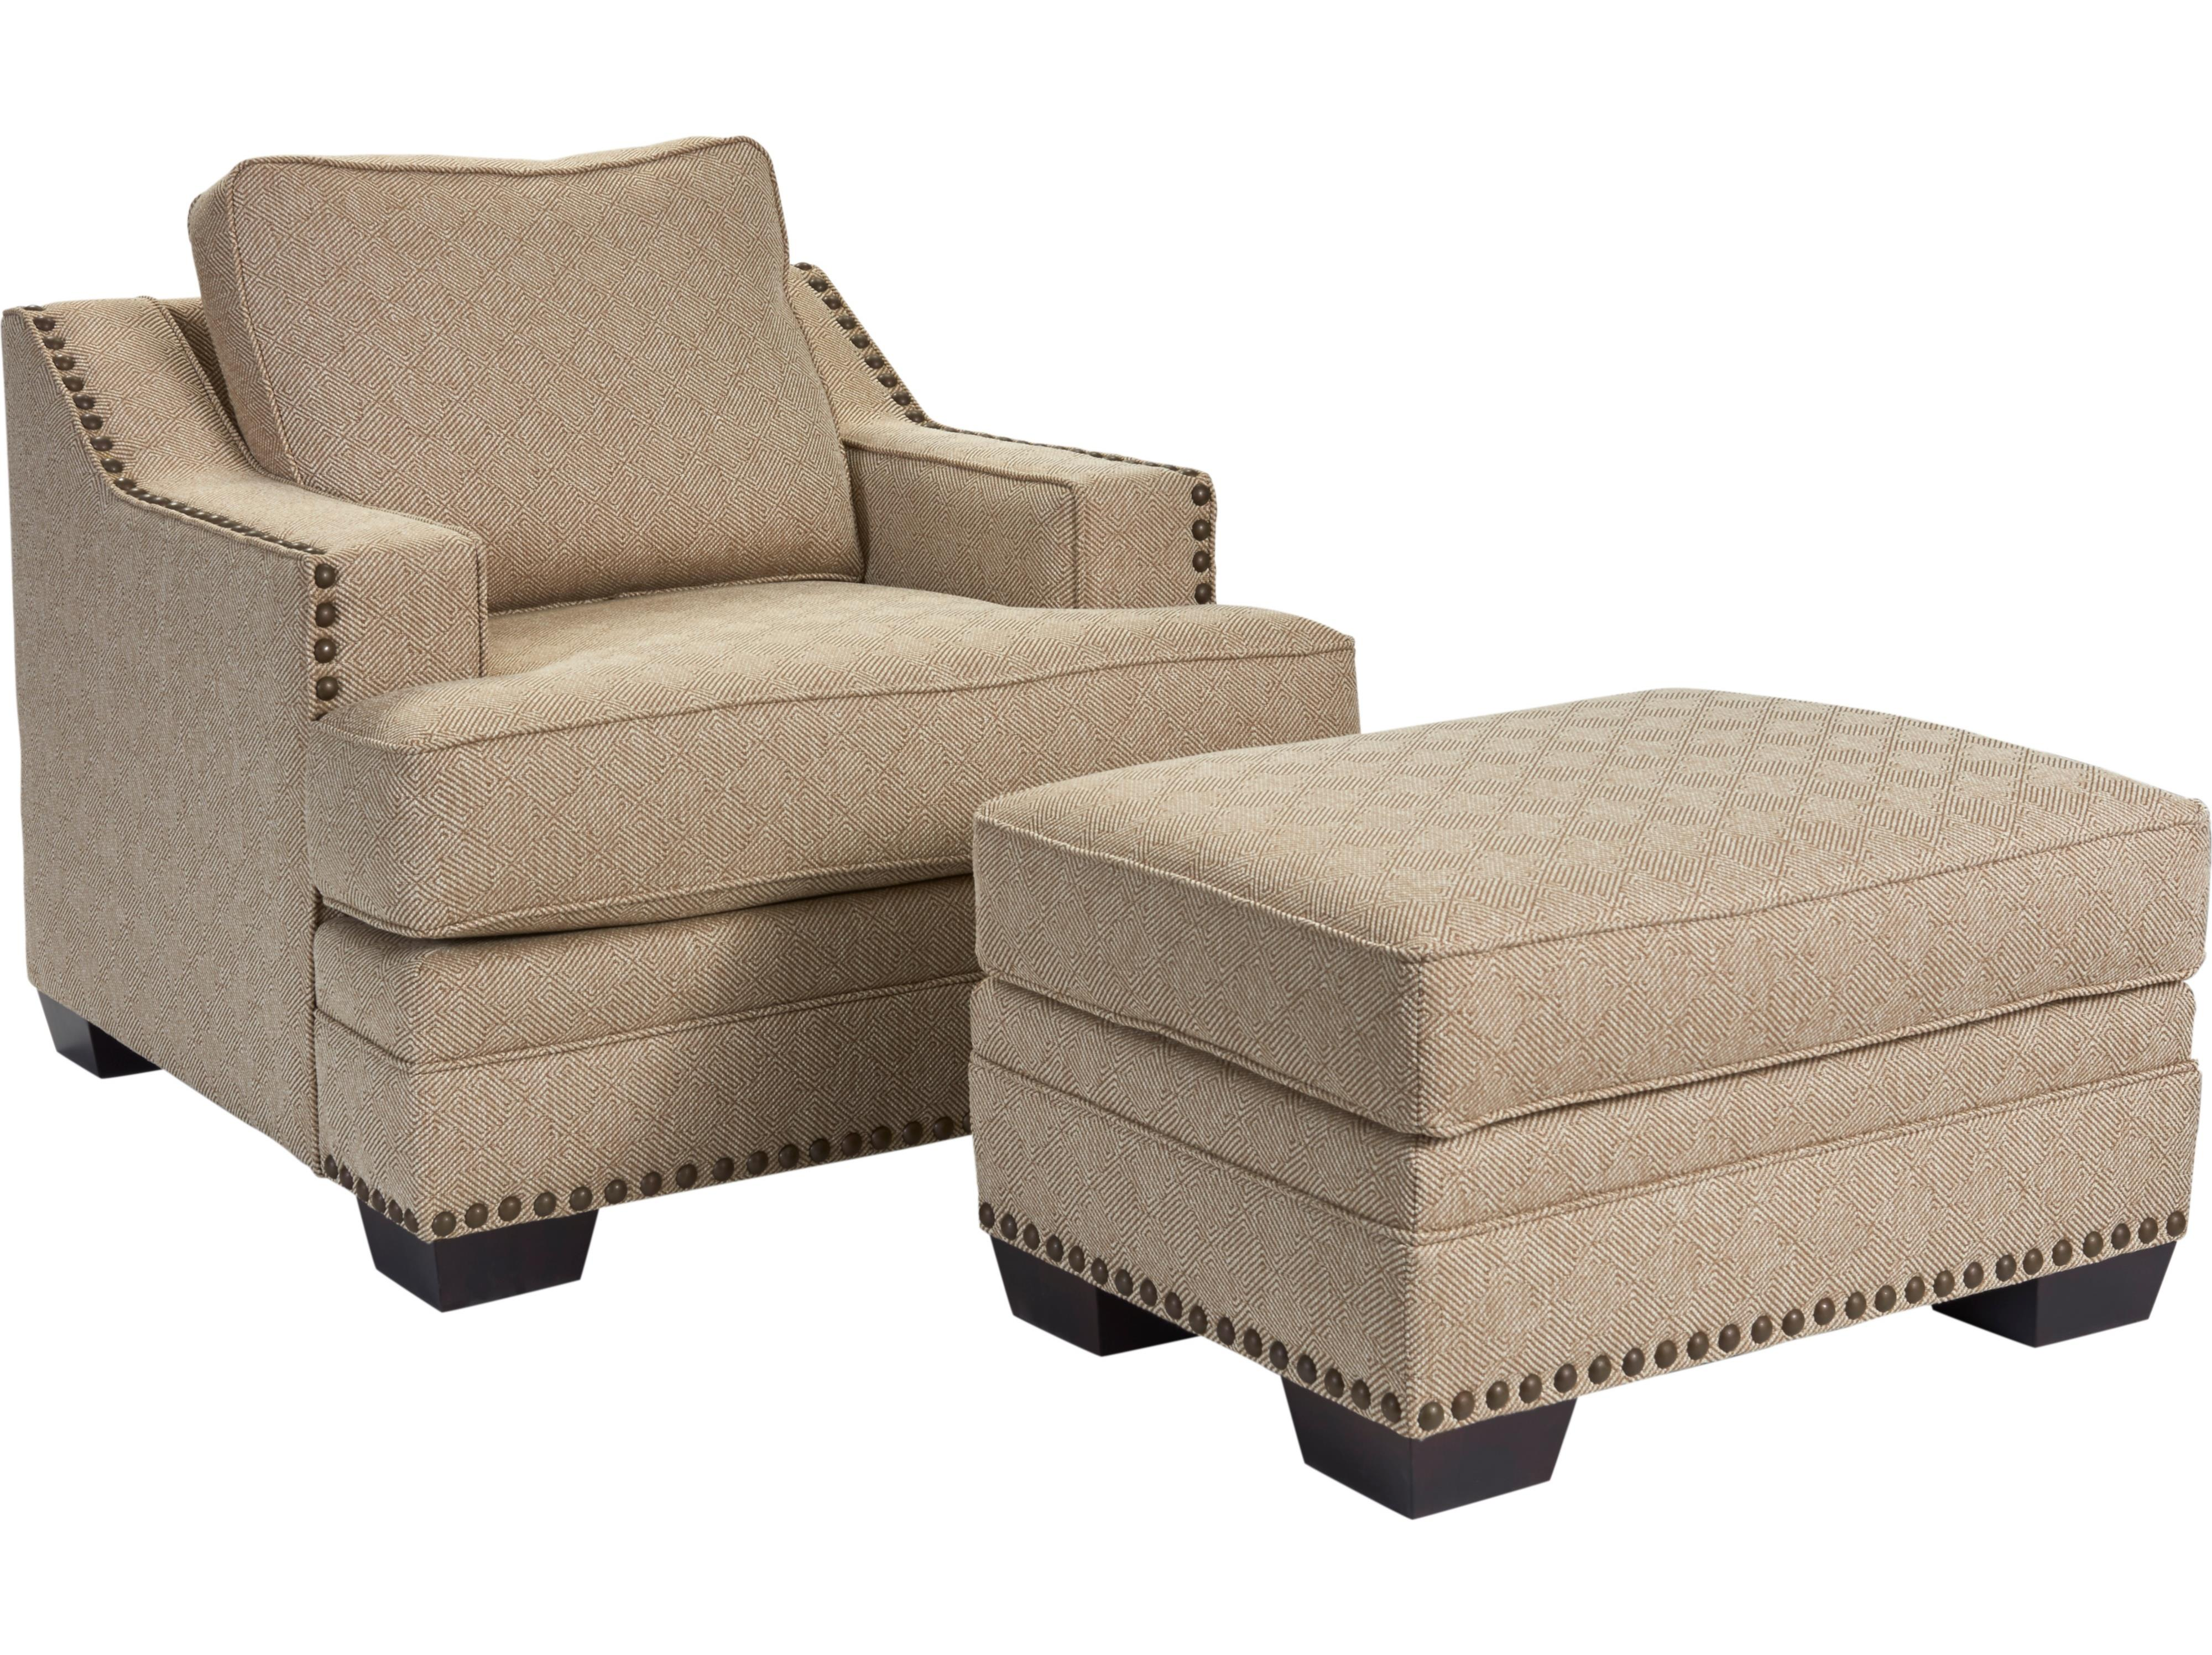 Broyhill Furniture Estes Park Chair and Ottoman Set - Item Number: 4263-0+5-4263-82